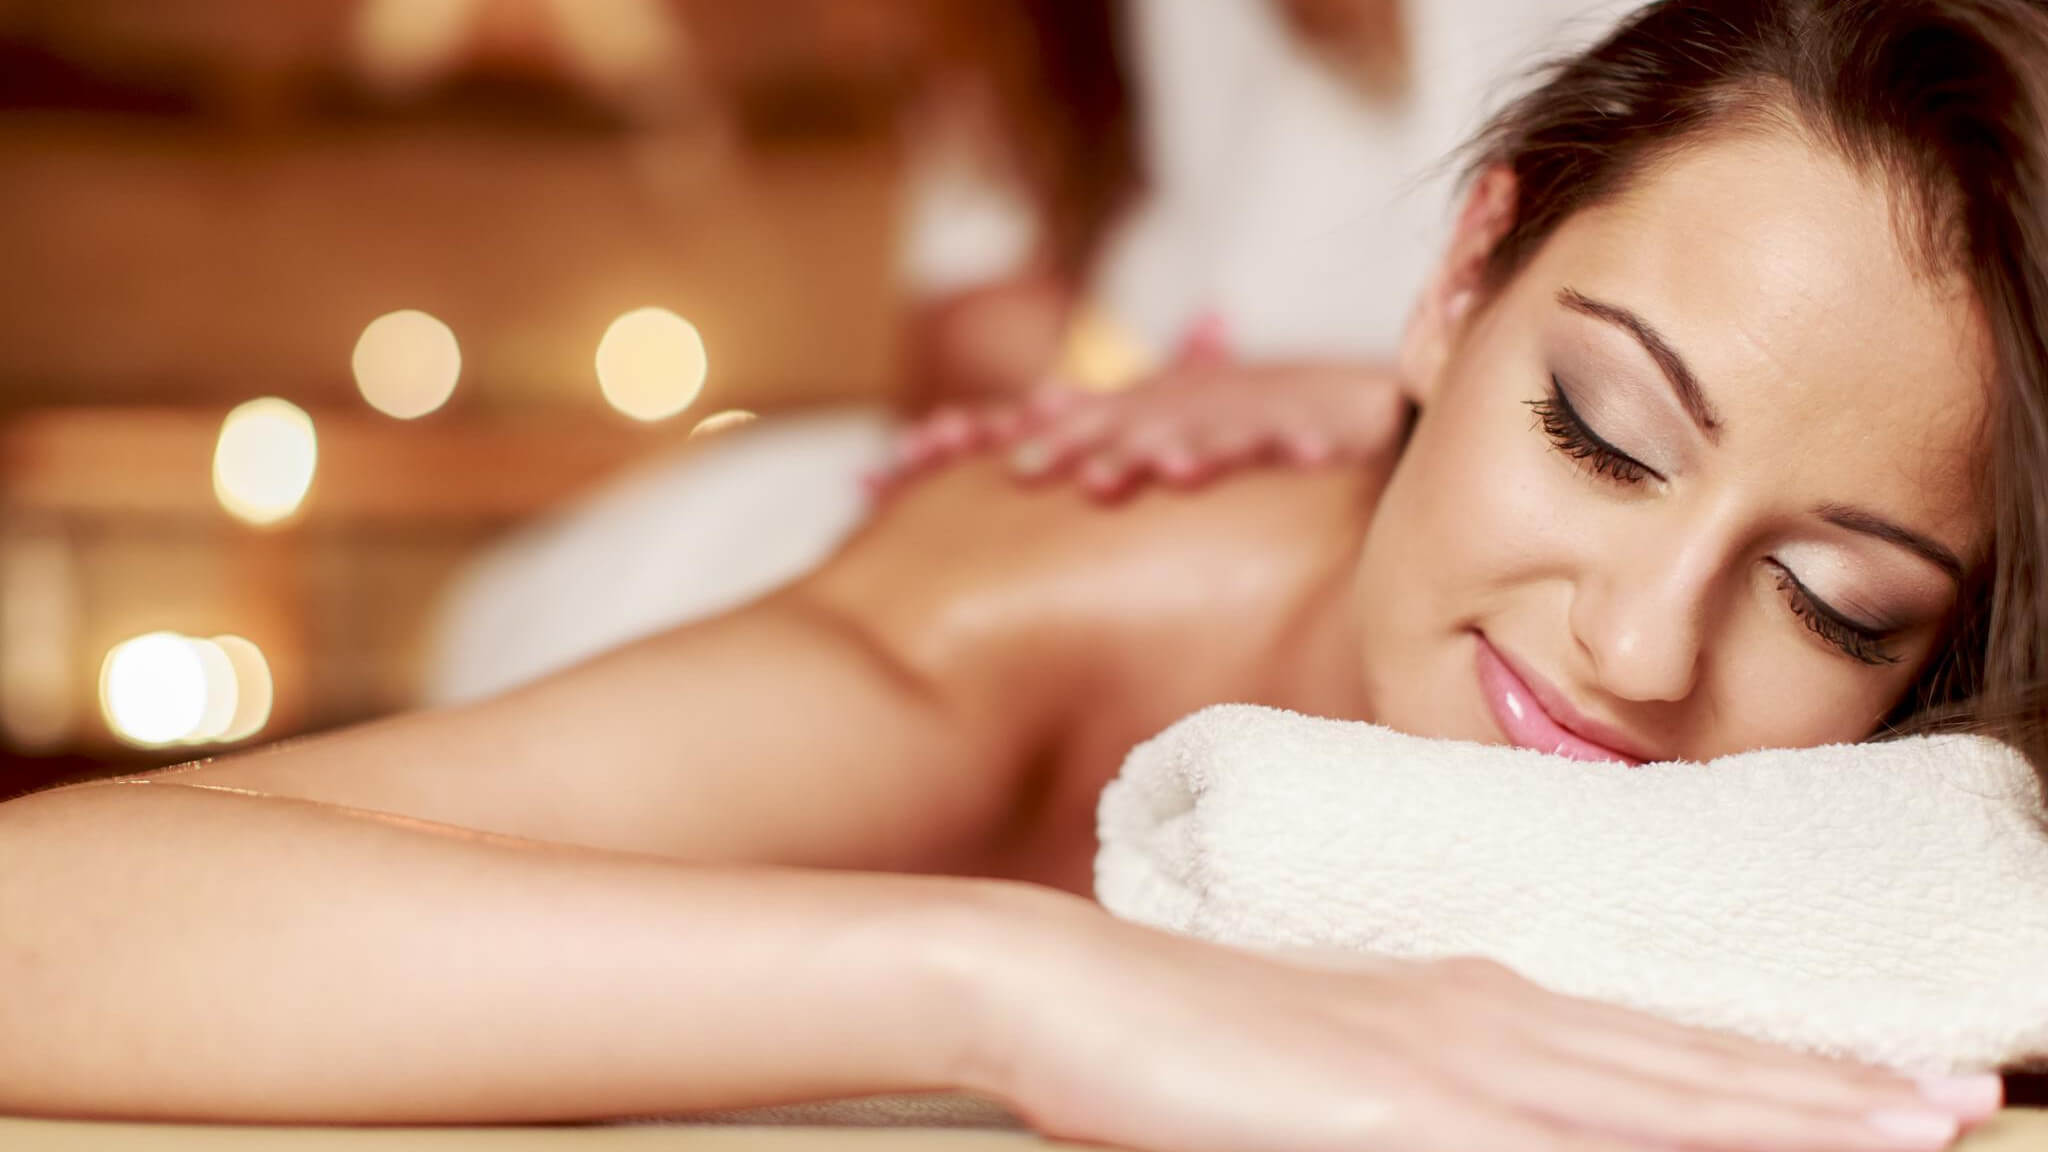 Ready for a true Las Vegas spa experience to get your chill on and make your Vegas vacation complete? Discover the best spa Las Vegas, NV has to offer at Serenity Spa.